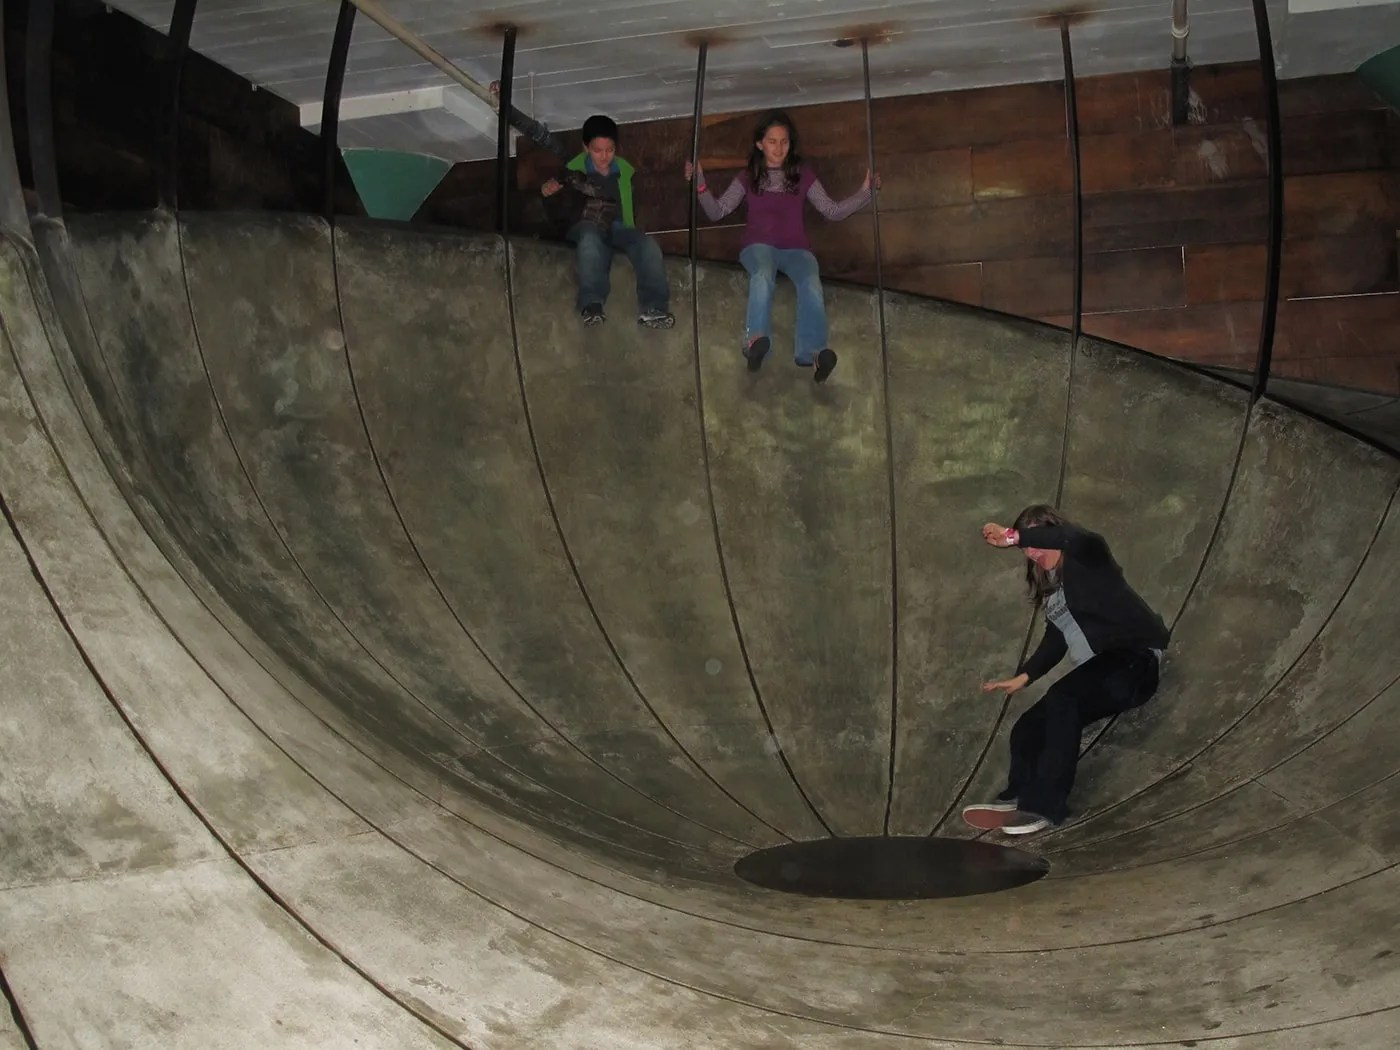 091b95a54 Skateless Park at the City Museum in St. Louis